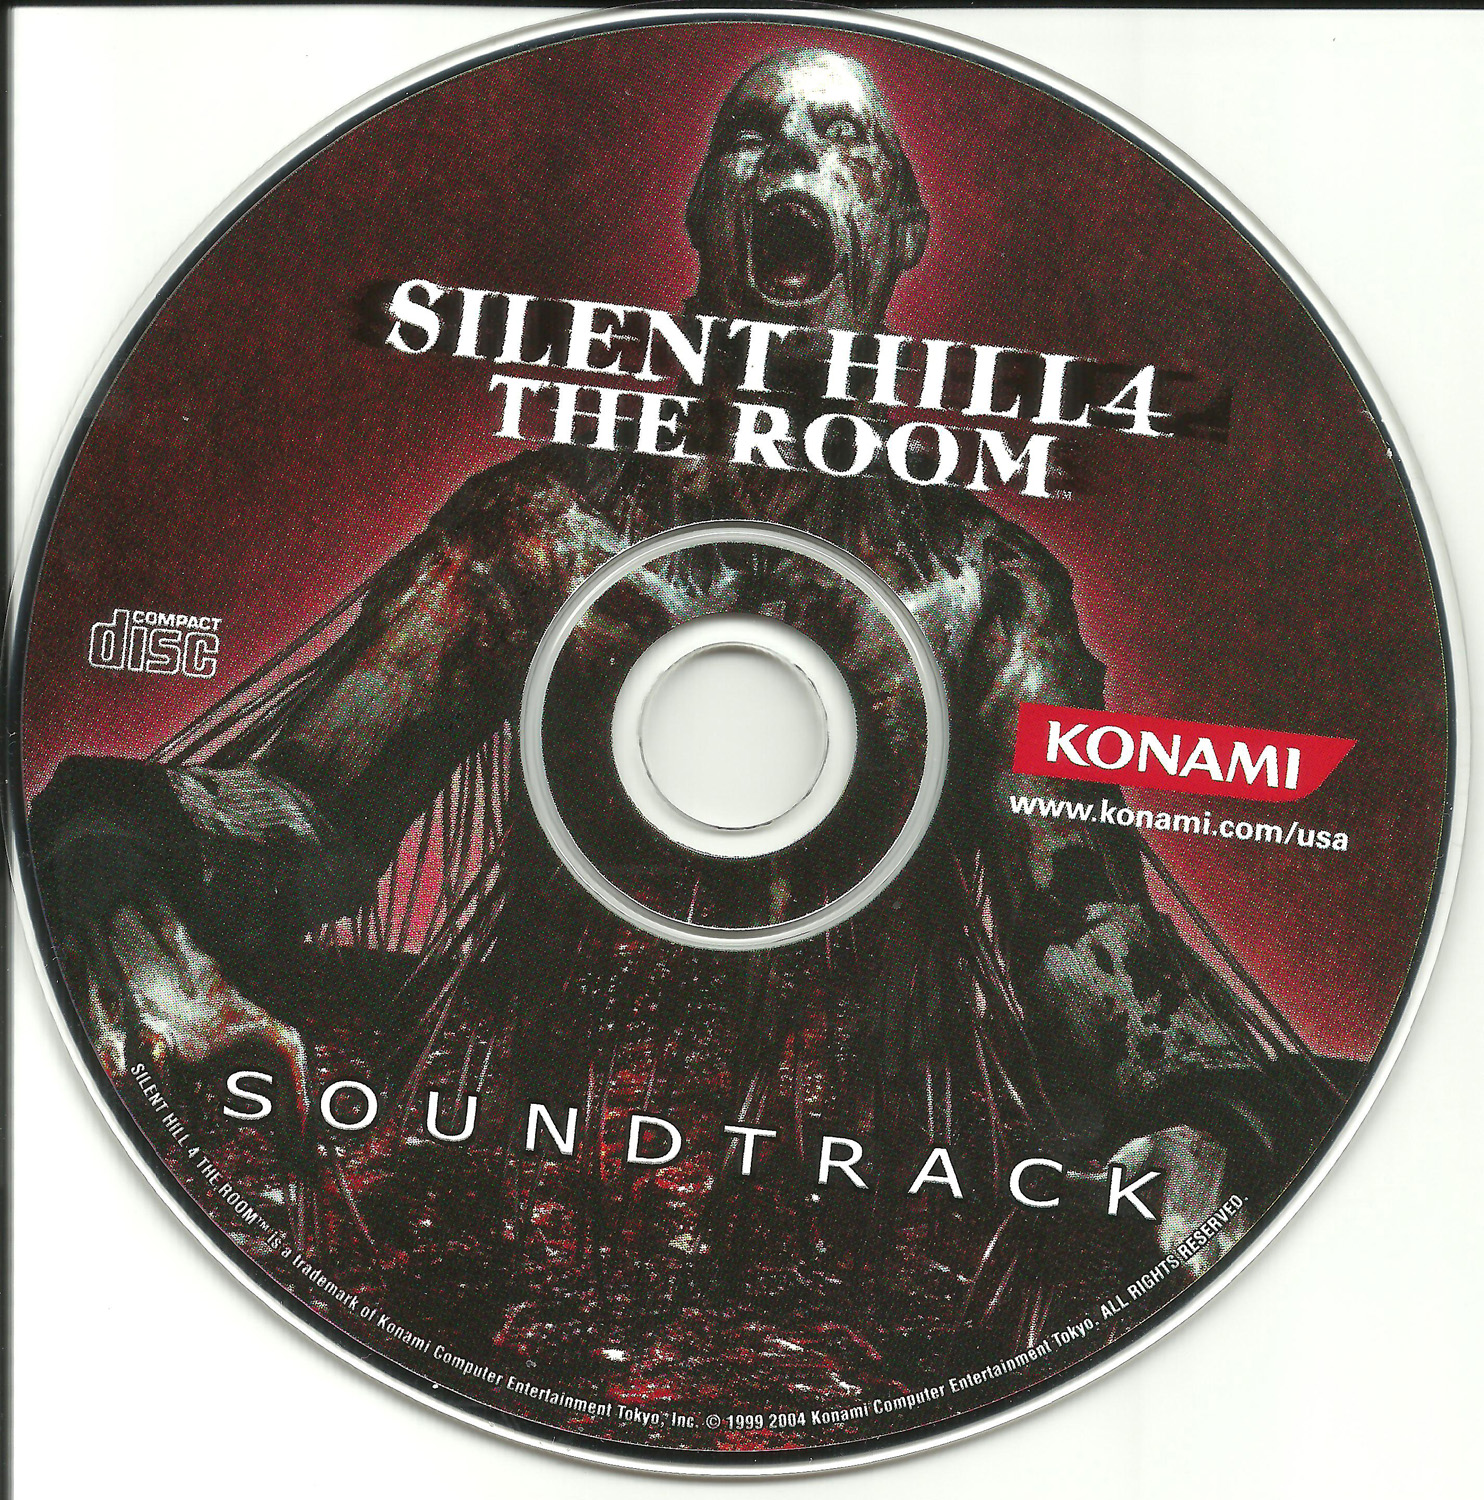 Silent Hill 4 The Room Limited Edition Soundtrack Mp3 Download